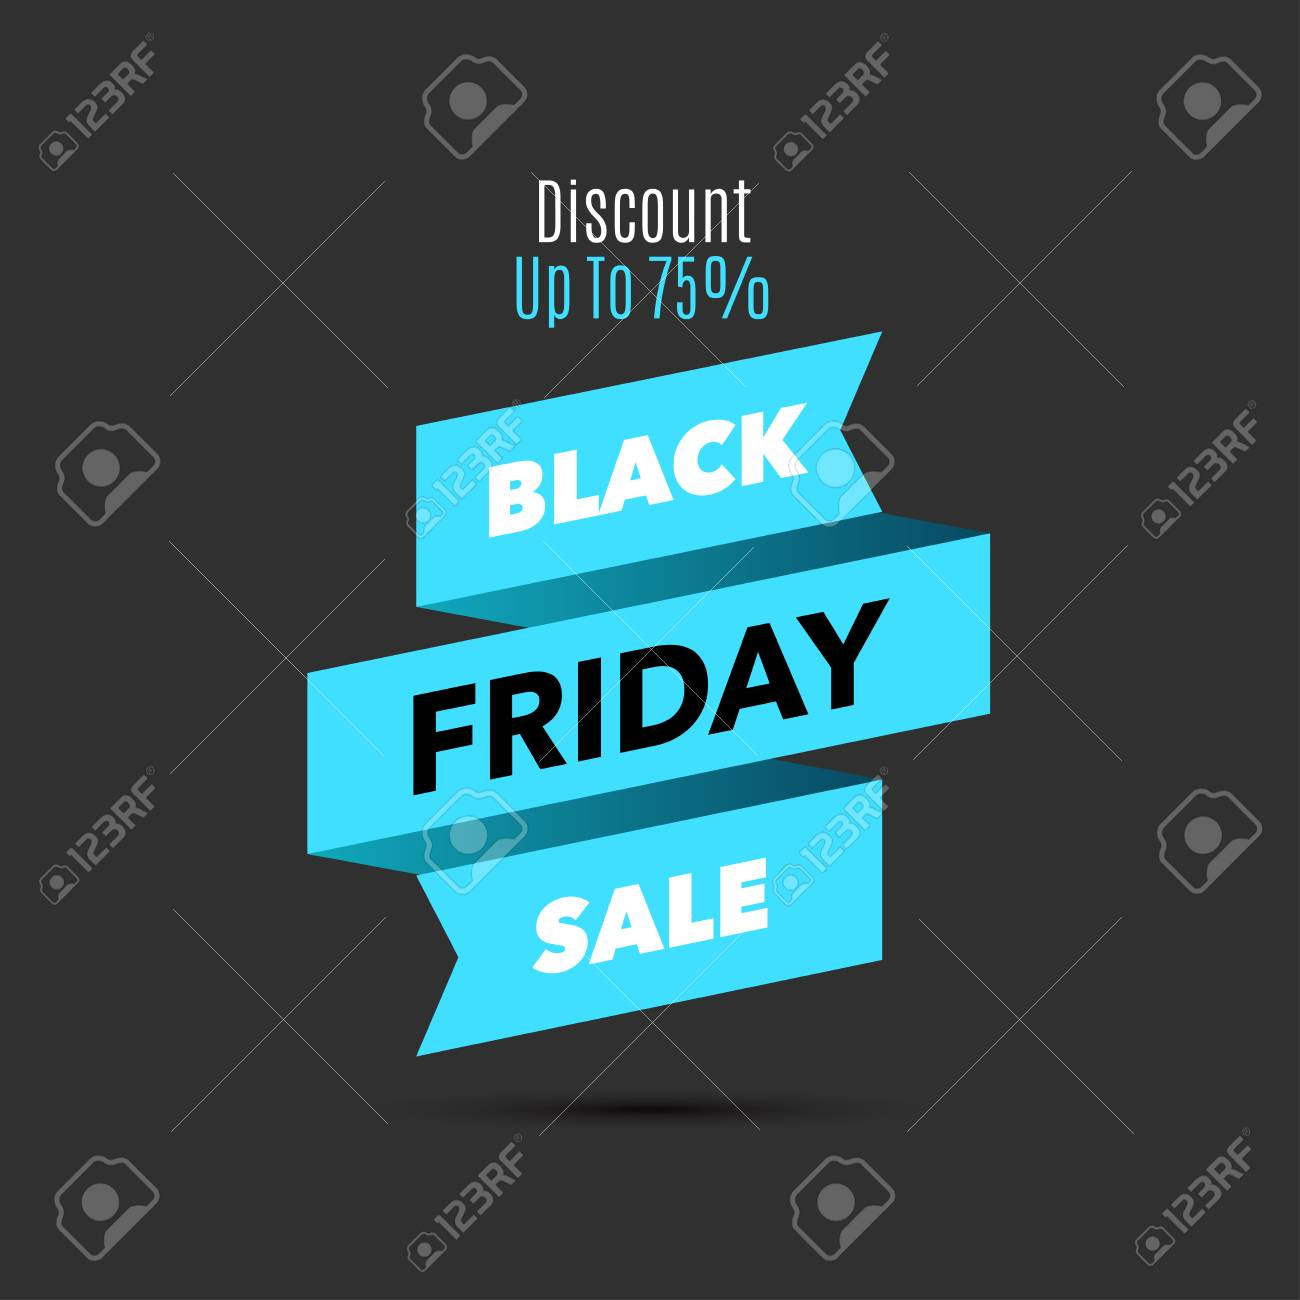 Black Friday Sale Design Template Creative Banner Vector Blue